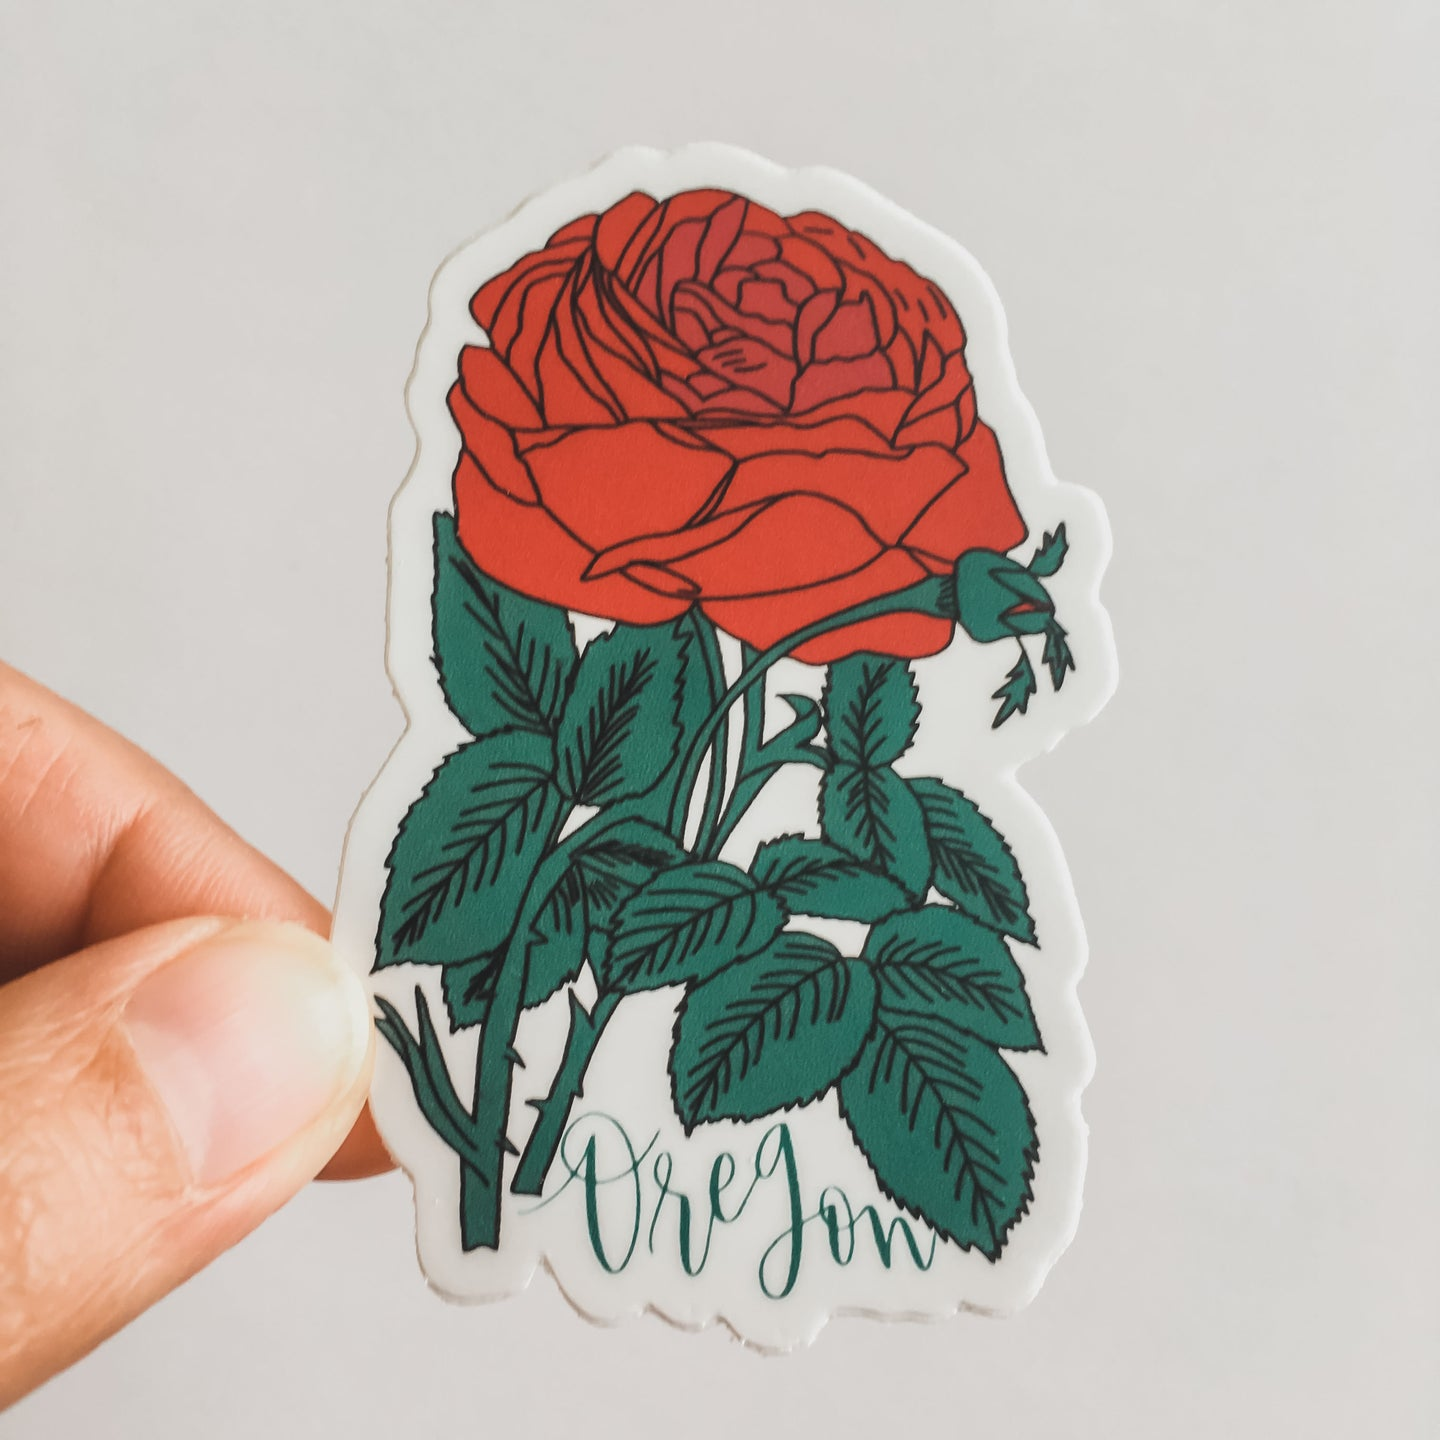 Oregon Red Rose Flower State Sticker Decal